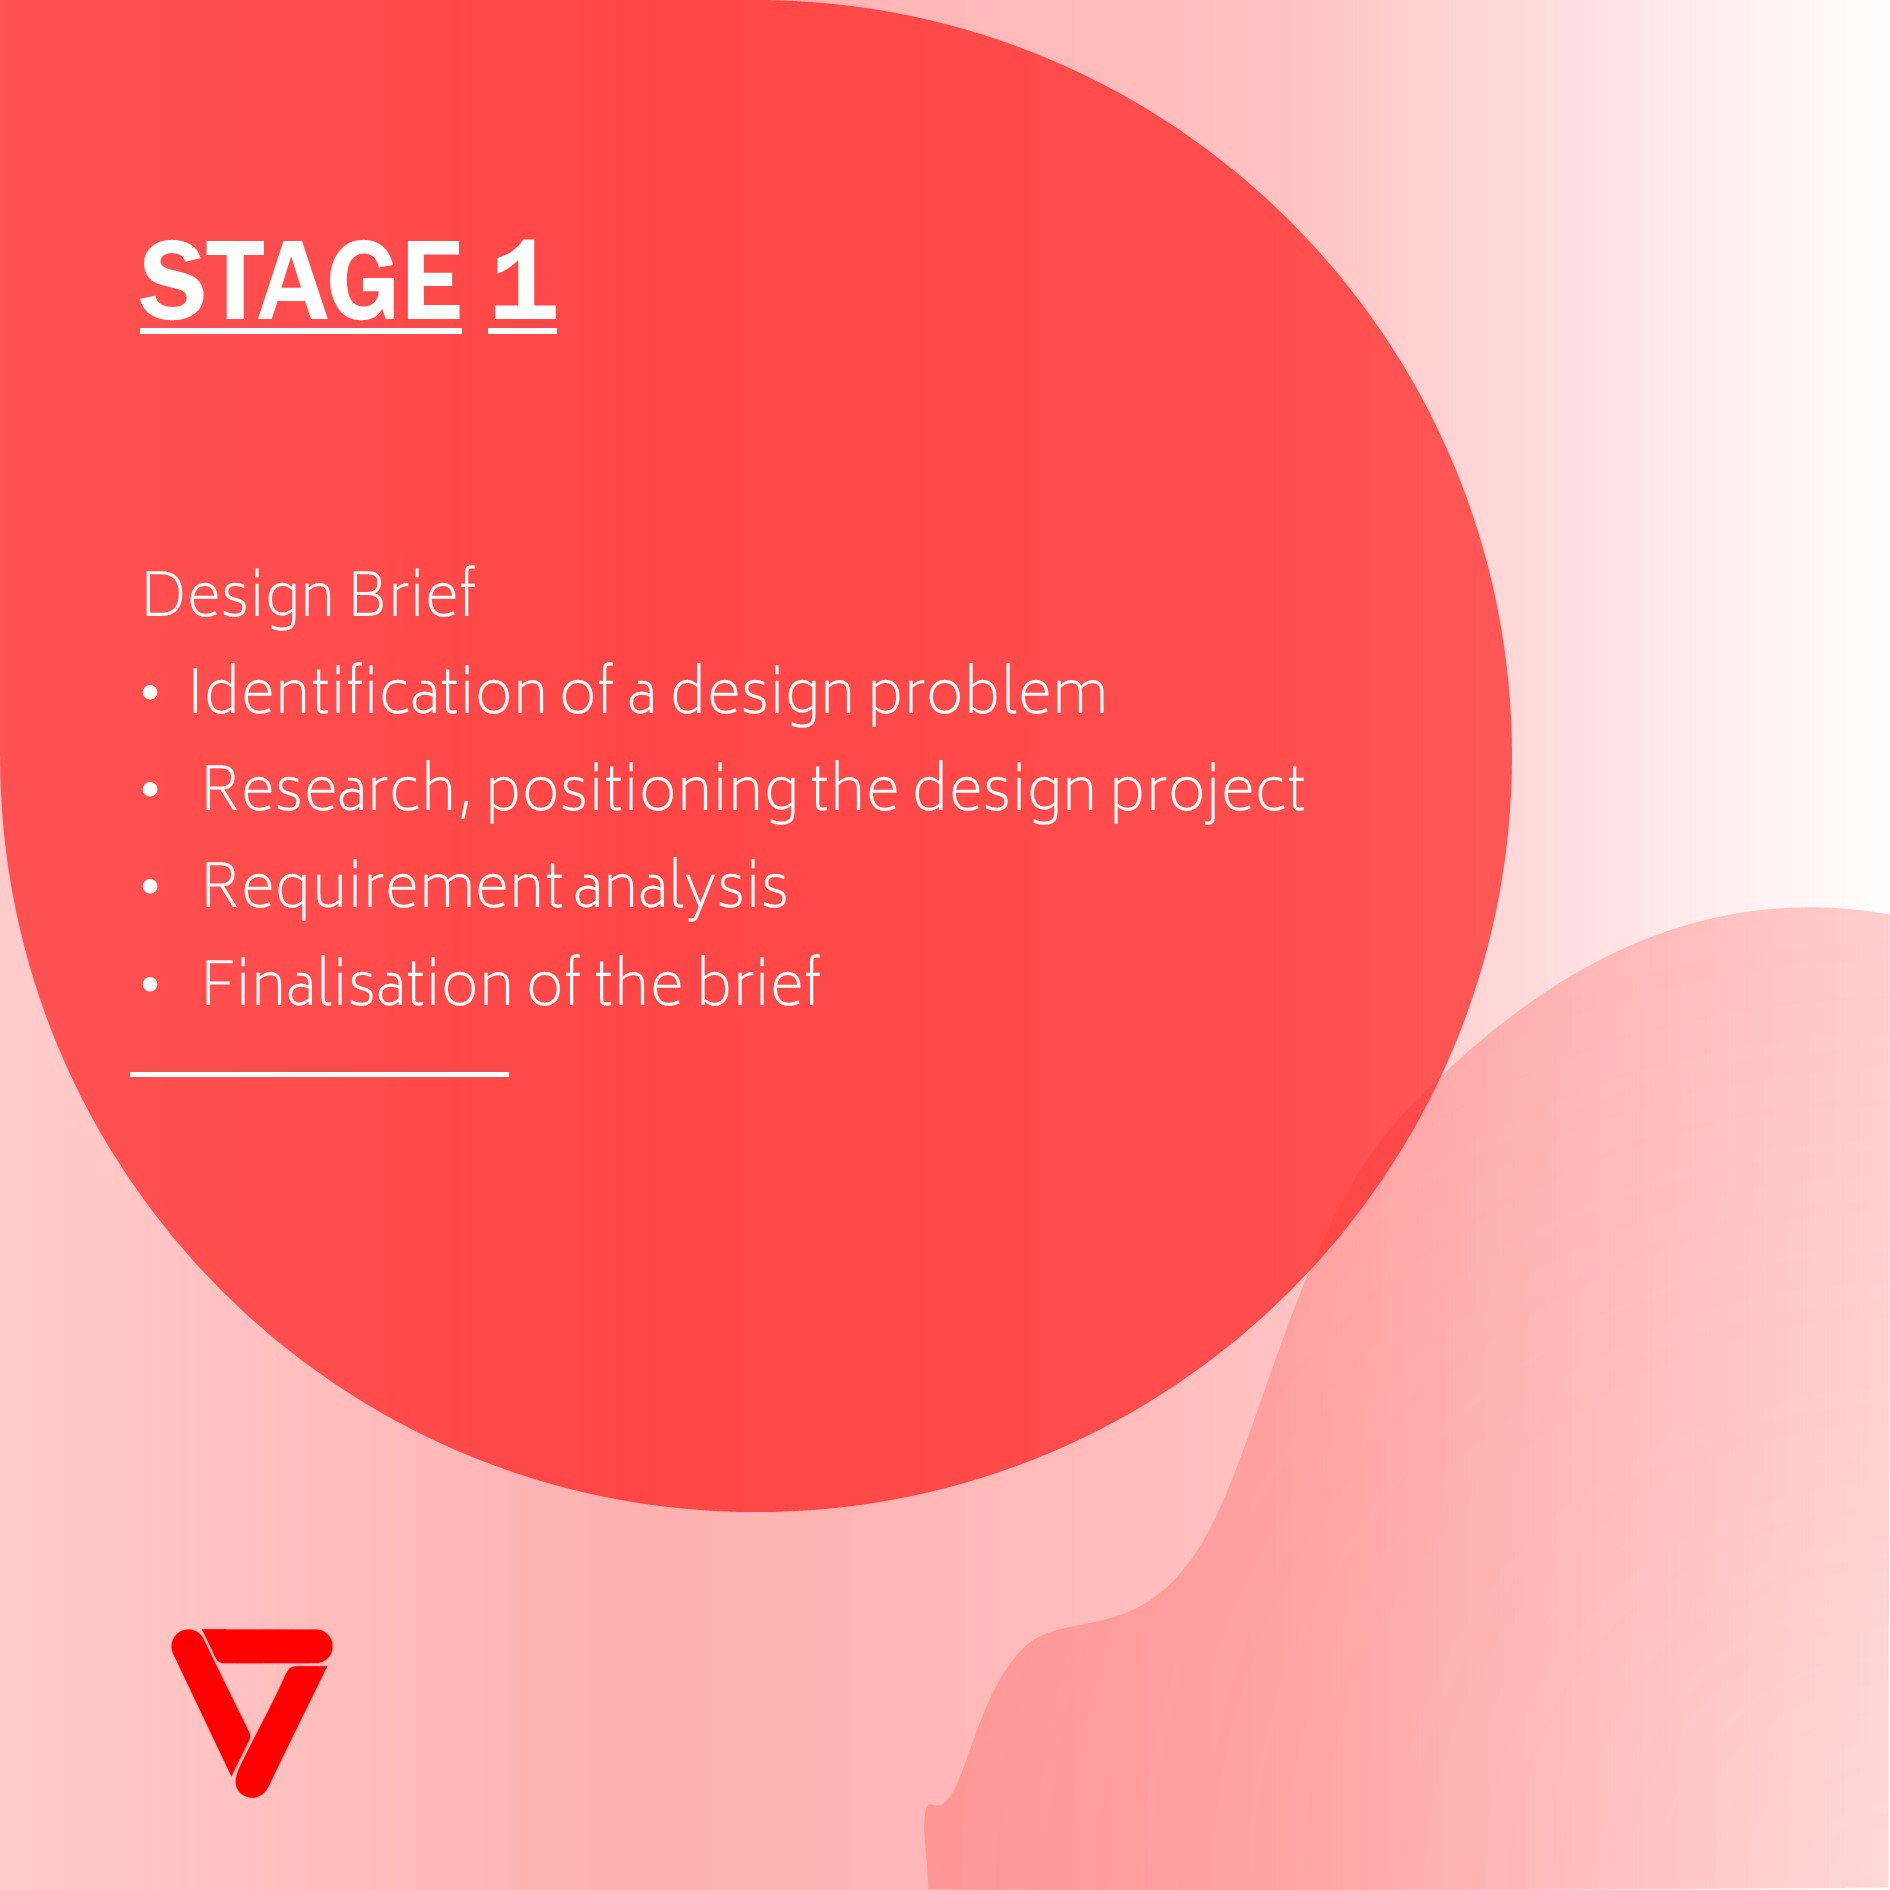 OUTLINE OF THE DESIGN PROCESS